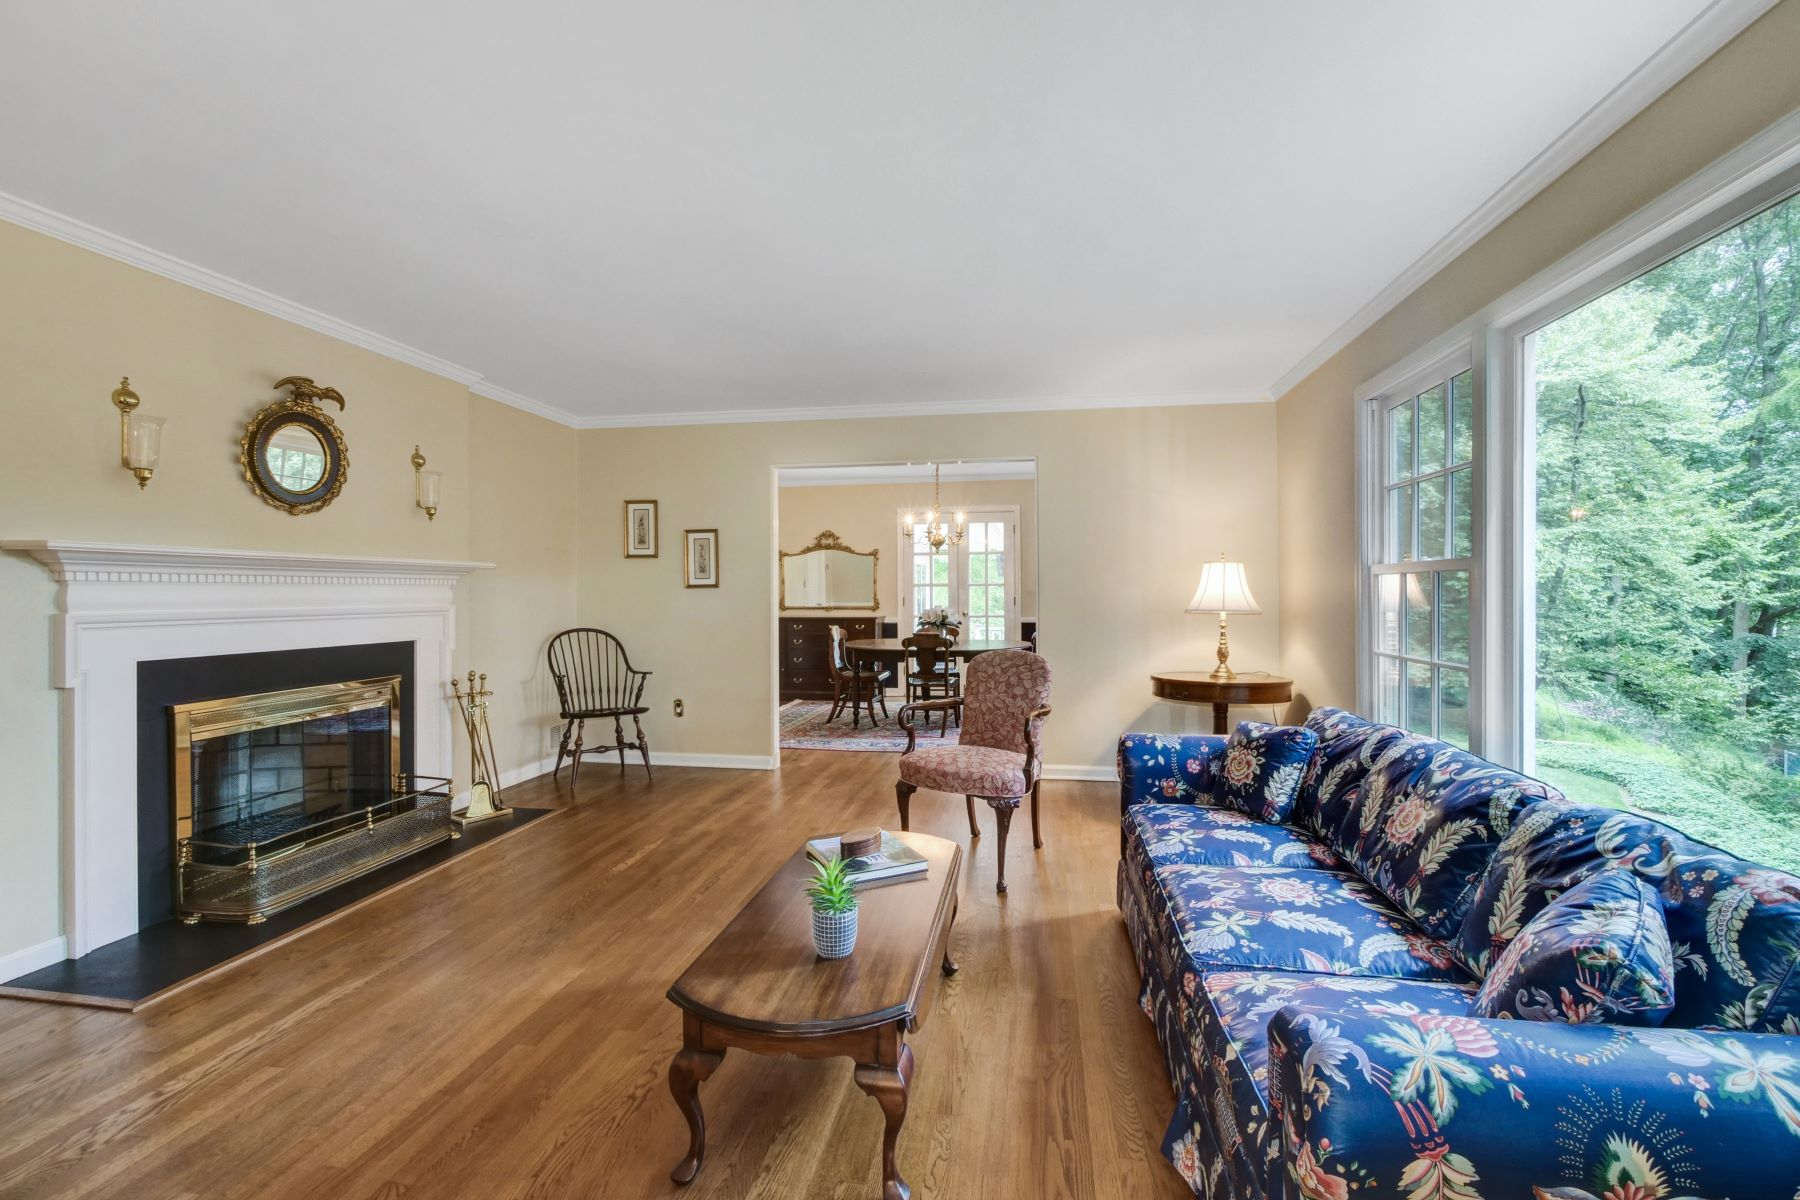 Single Family Homes for Sale at Private, Expanded Ranch 7 Skyline Drive Morris Township, New Jersey 07960 United States